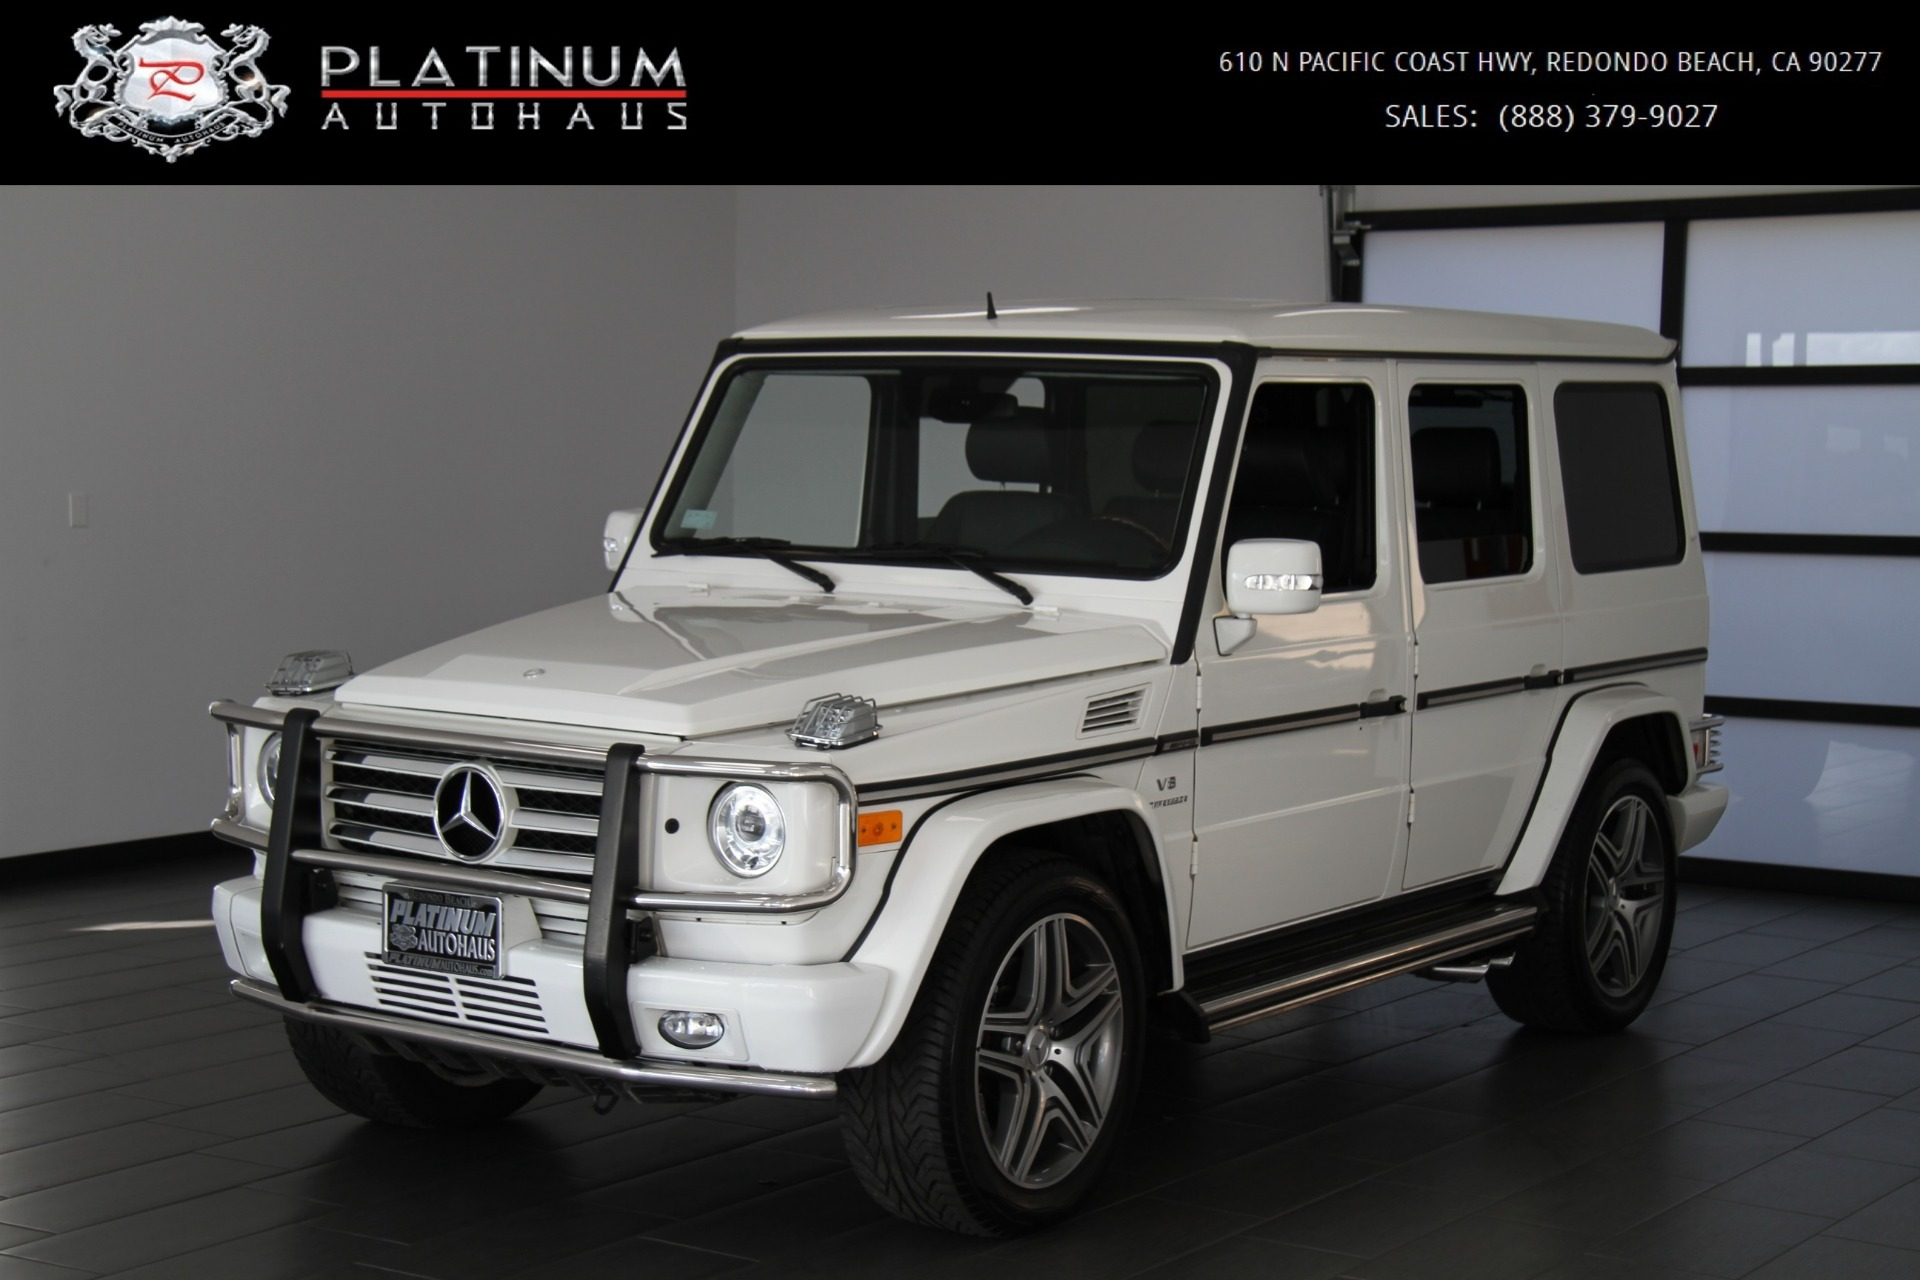 2005 mercedes benz g class g 55 amg designo stock 5834a for sale near redondo beach ca ca. Black Bedroom Furniture Sets. Home Design Ideas